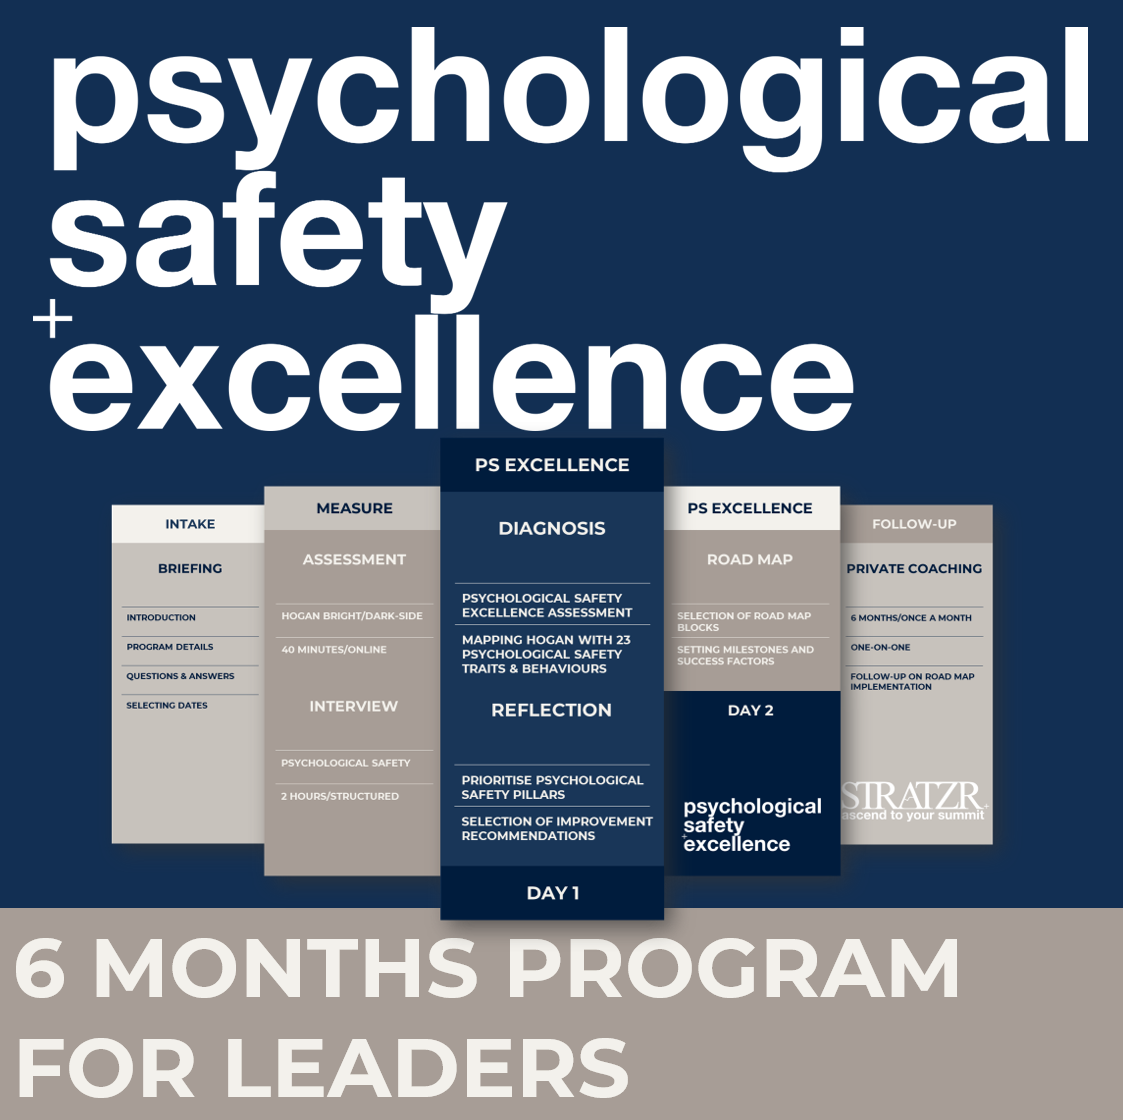 psychological safety excellence program for leaders by STRATZR.com